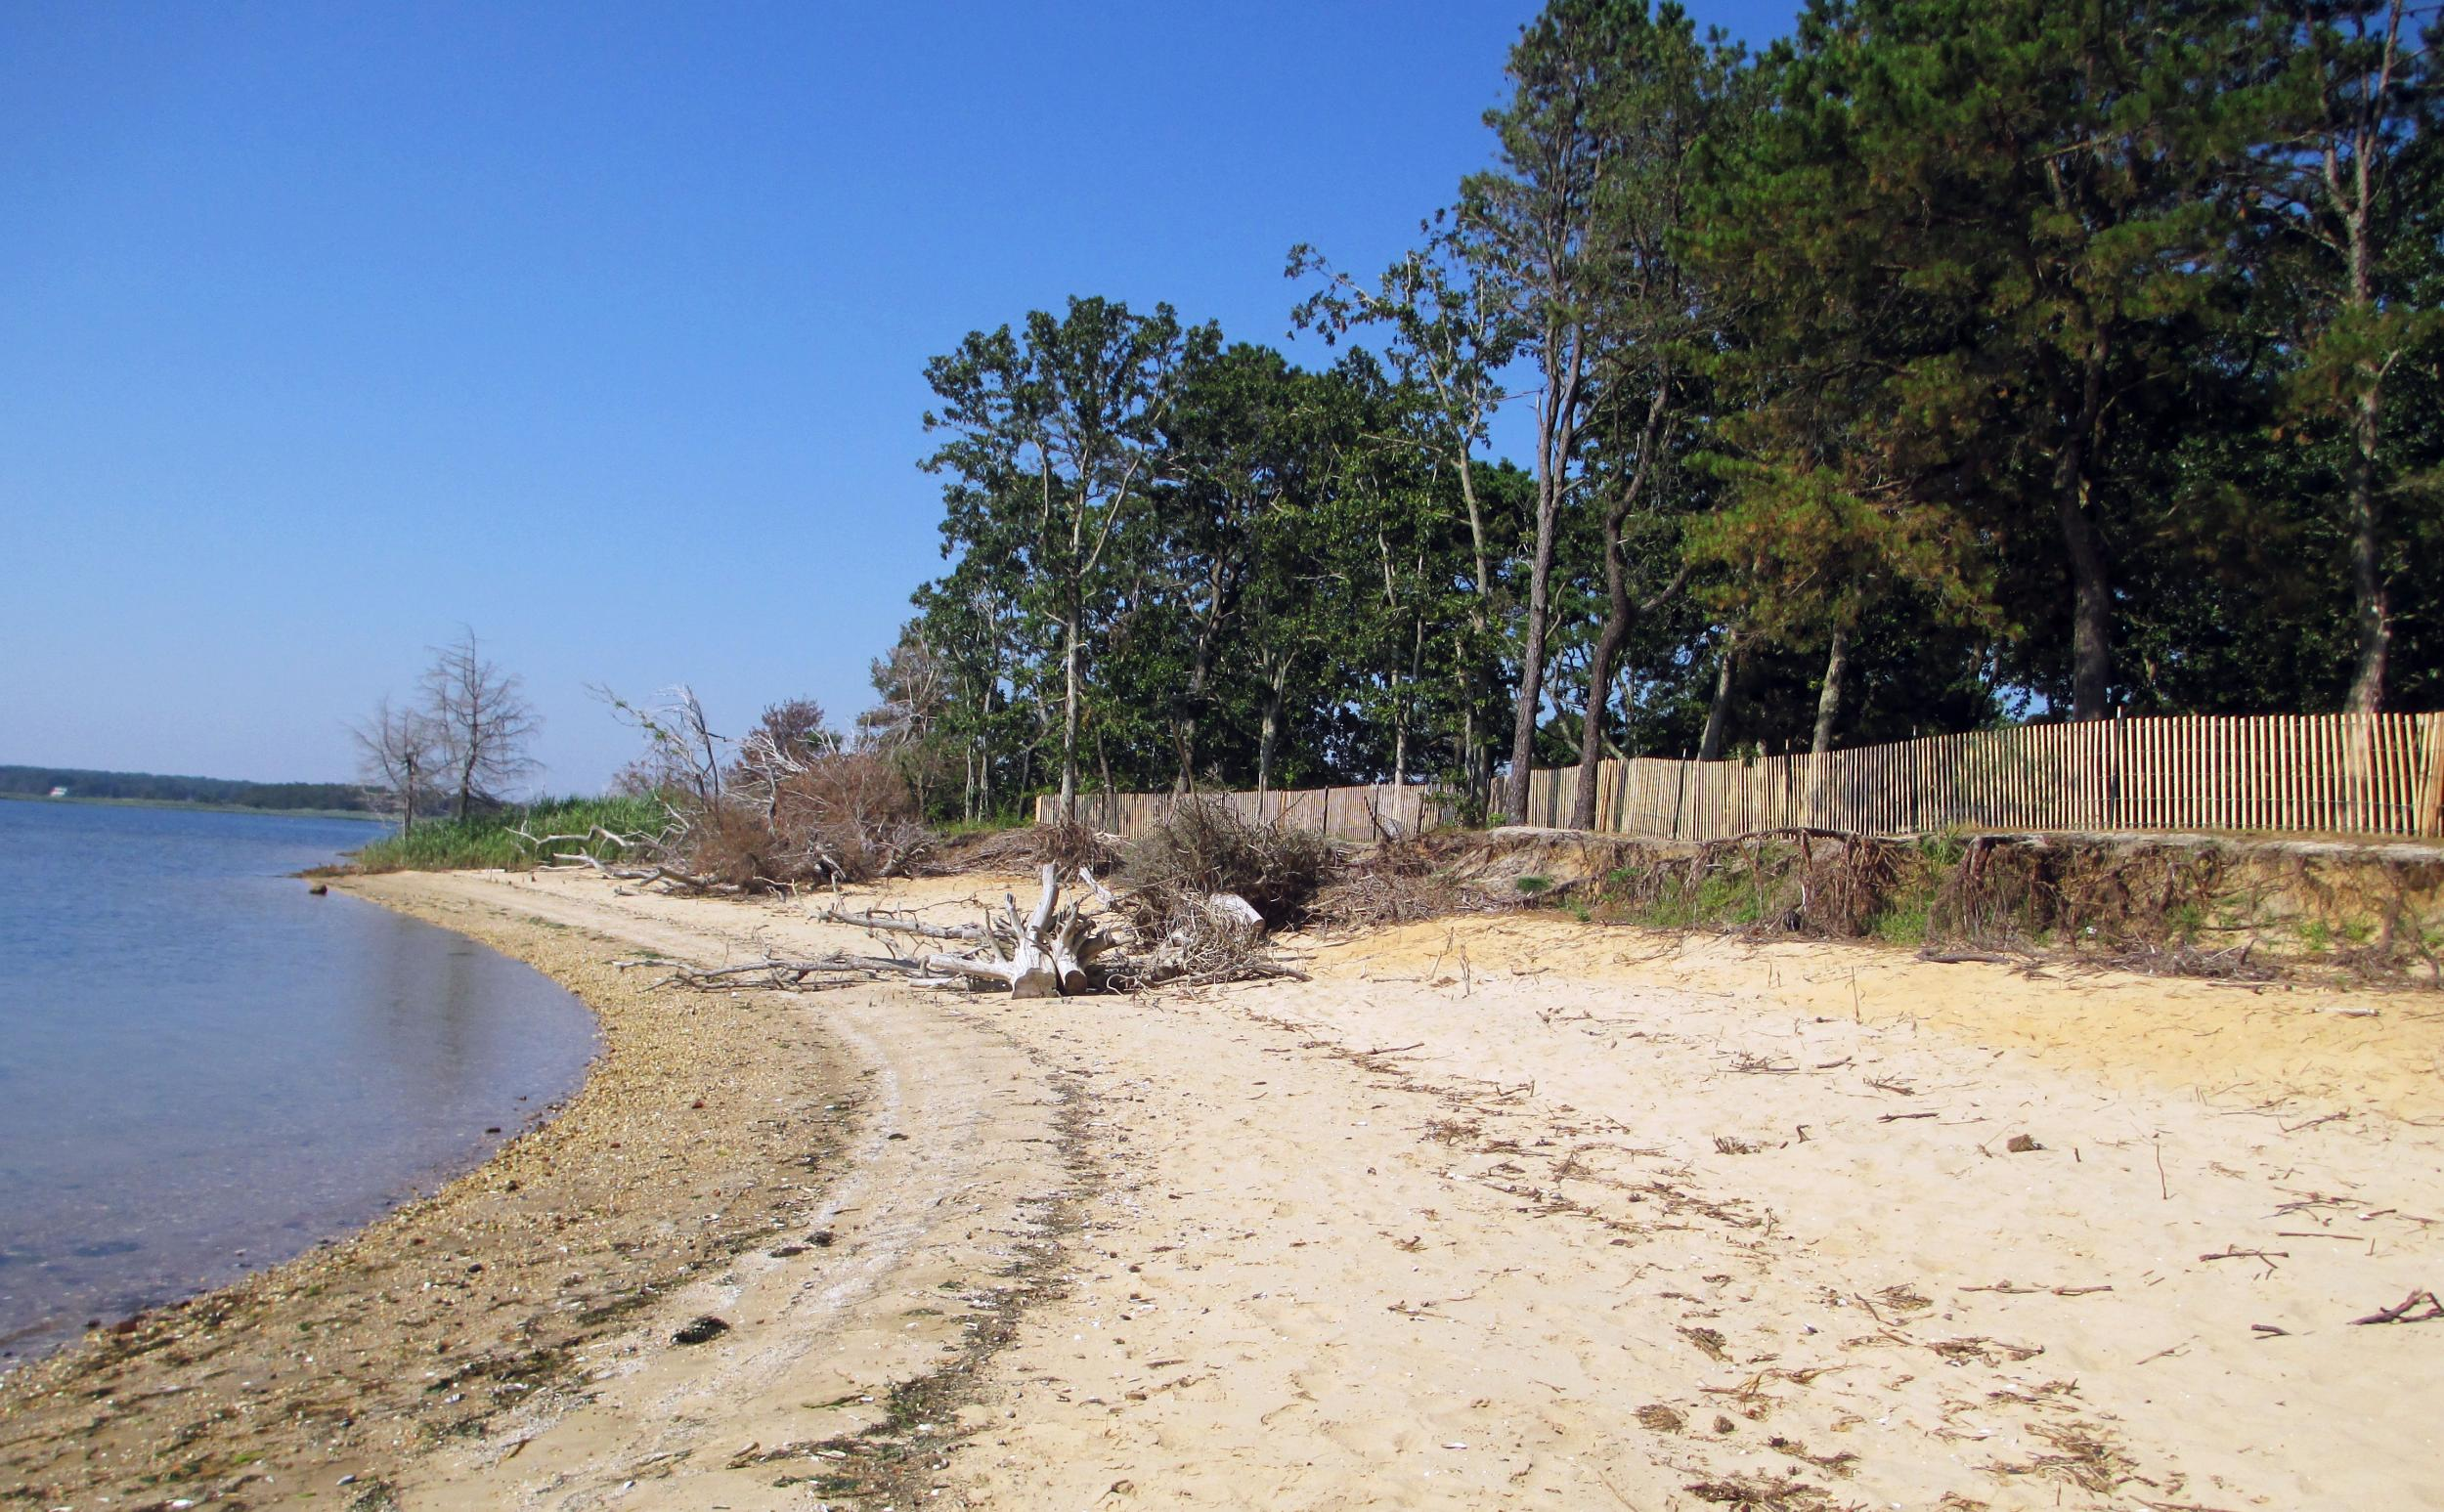 Beach and bluff shoreline at Indian Head County Park